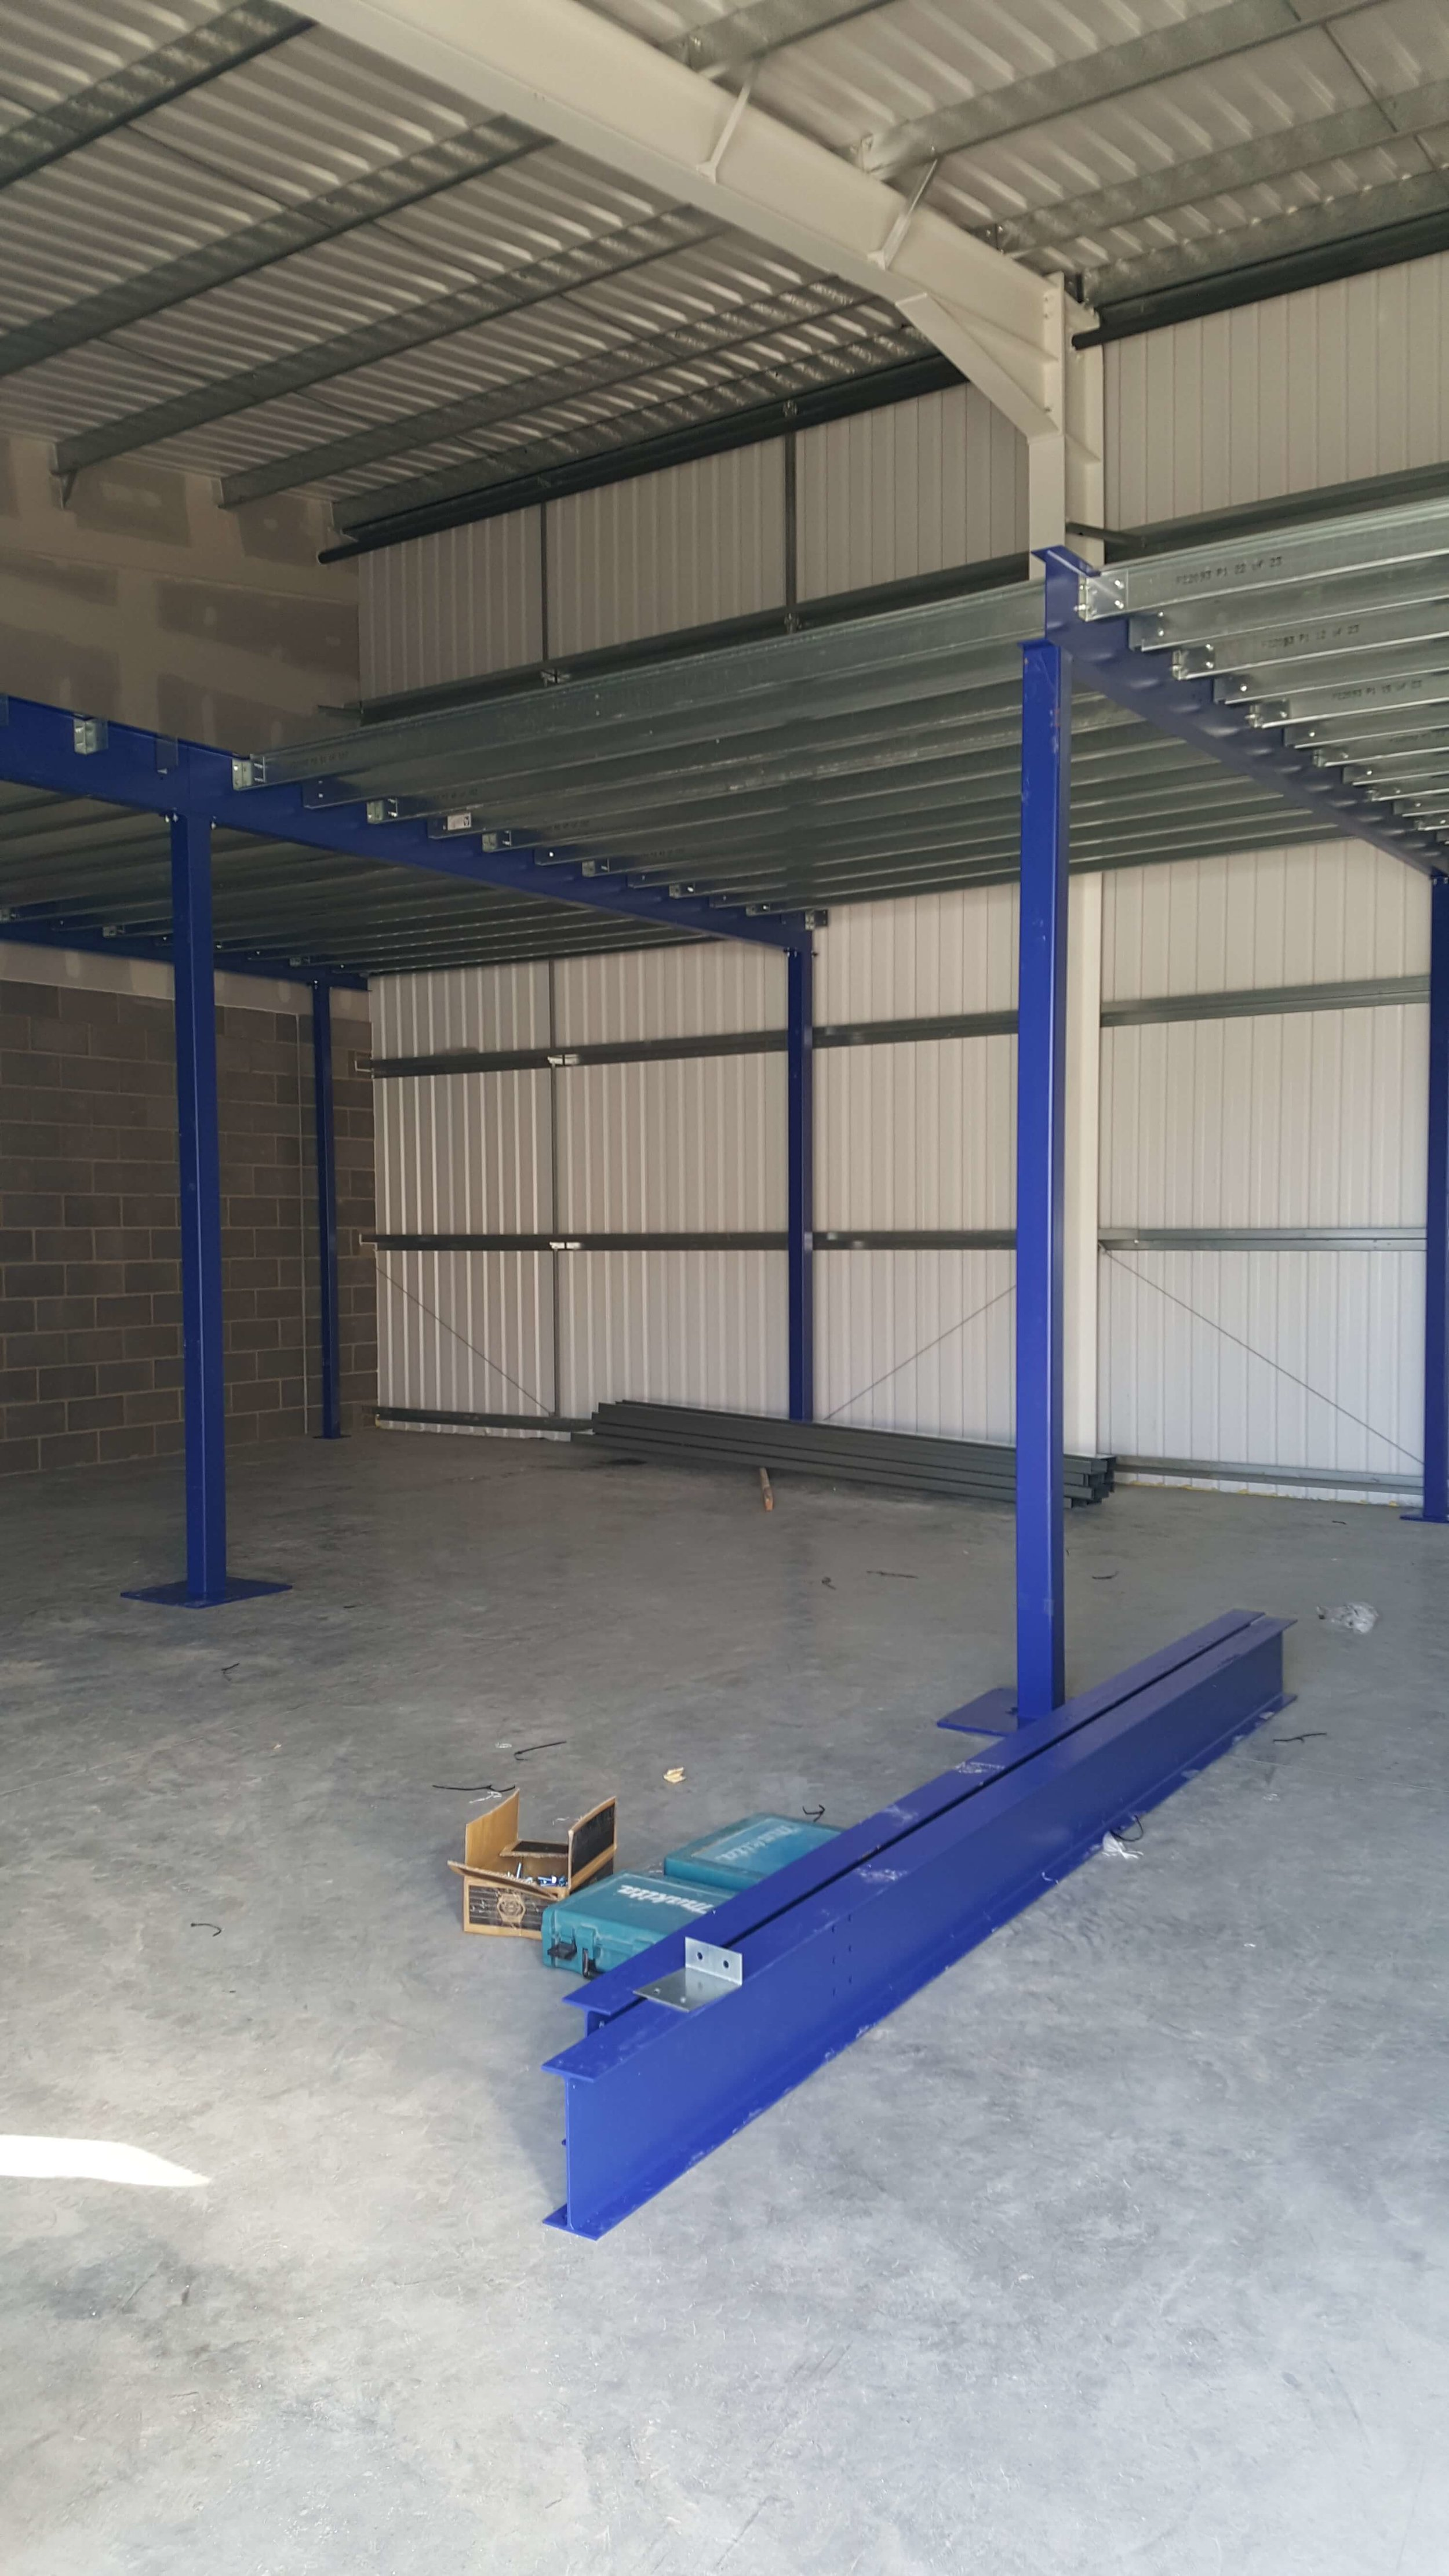 - The first of two mezzanine floors